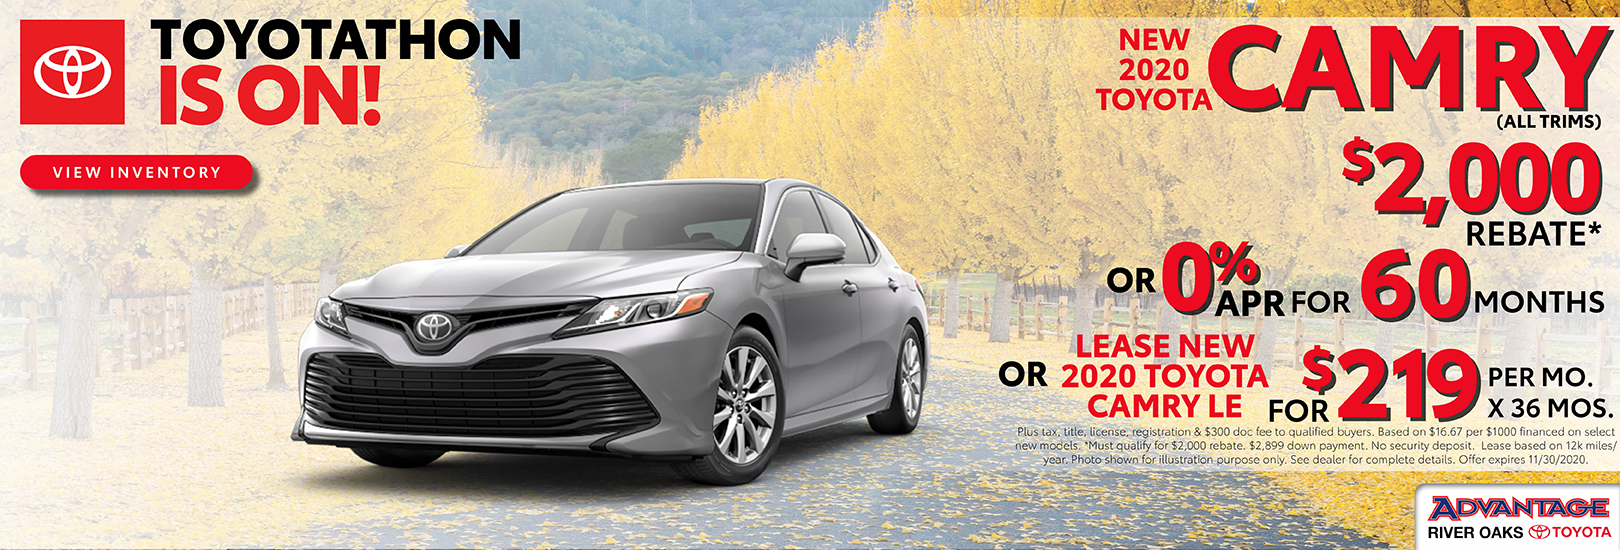 2020 Toyota Camry Finance or Lease Offer | Calumet City, IL